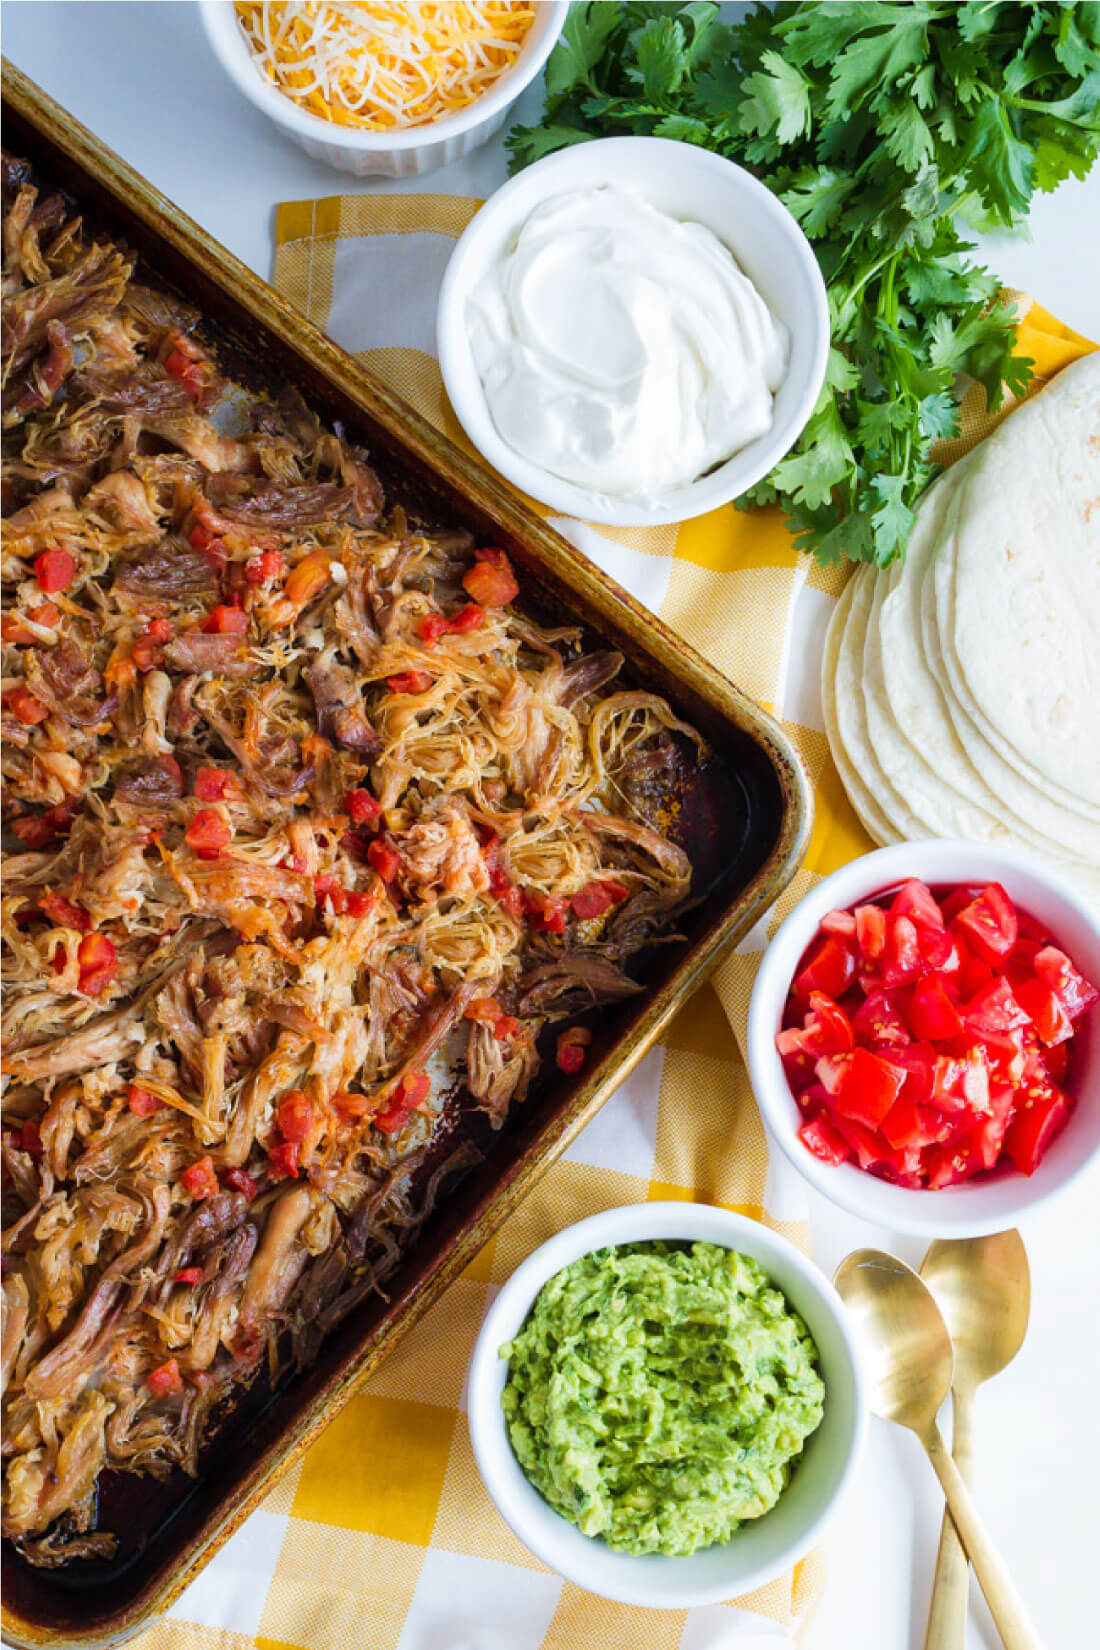 Full of flavor with a little spice, this Pork Carnitas recipe is a tasty Mexican favorite. www.thirtyhandmadedays.com